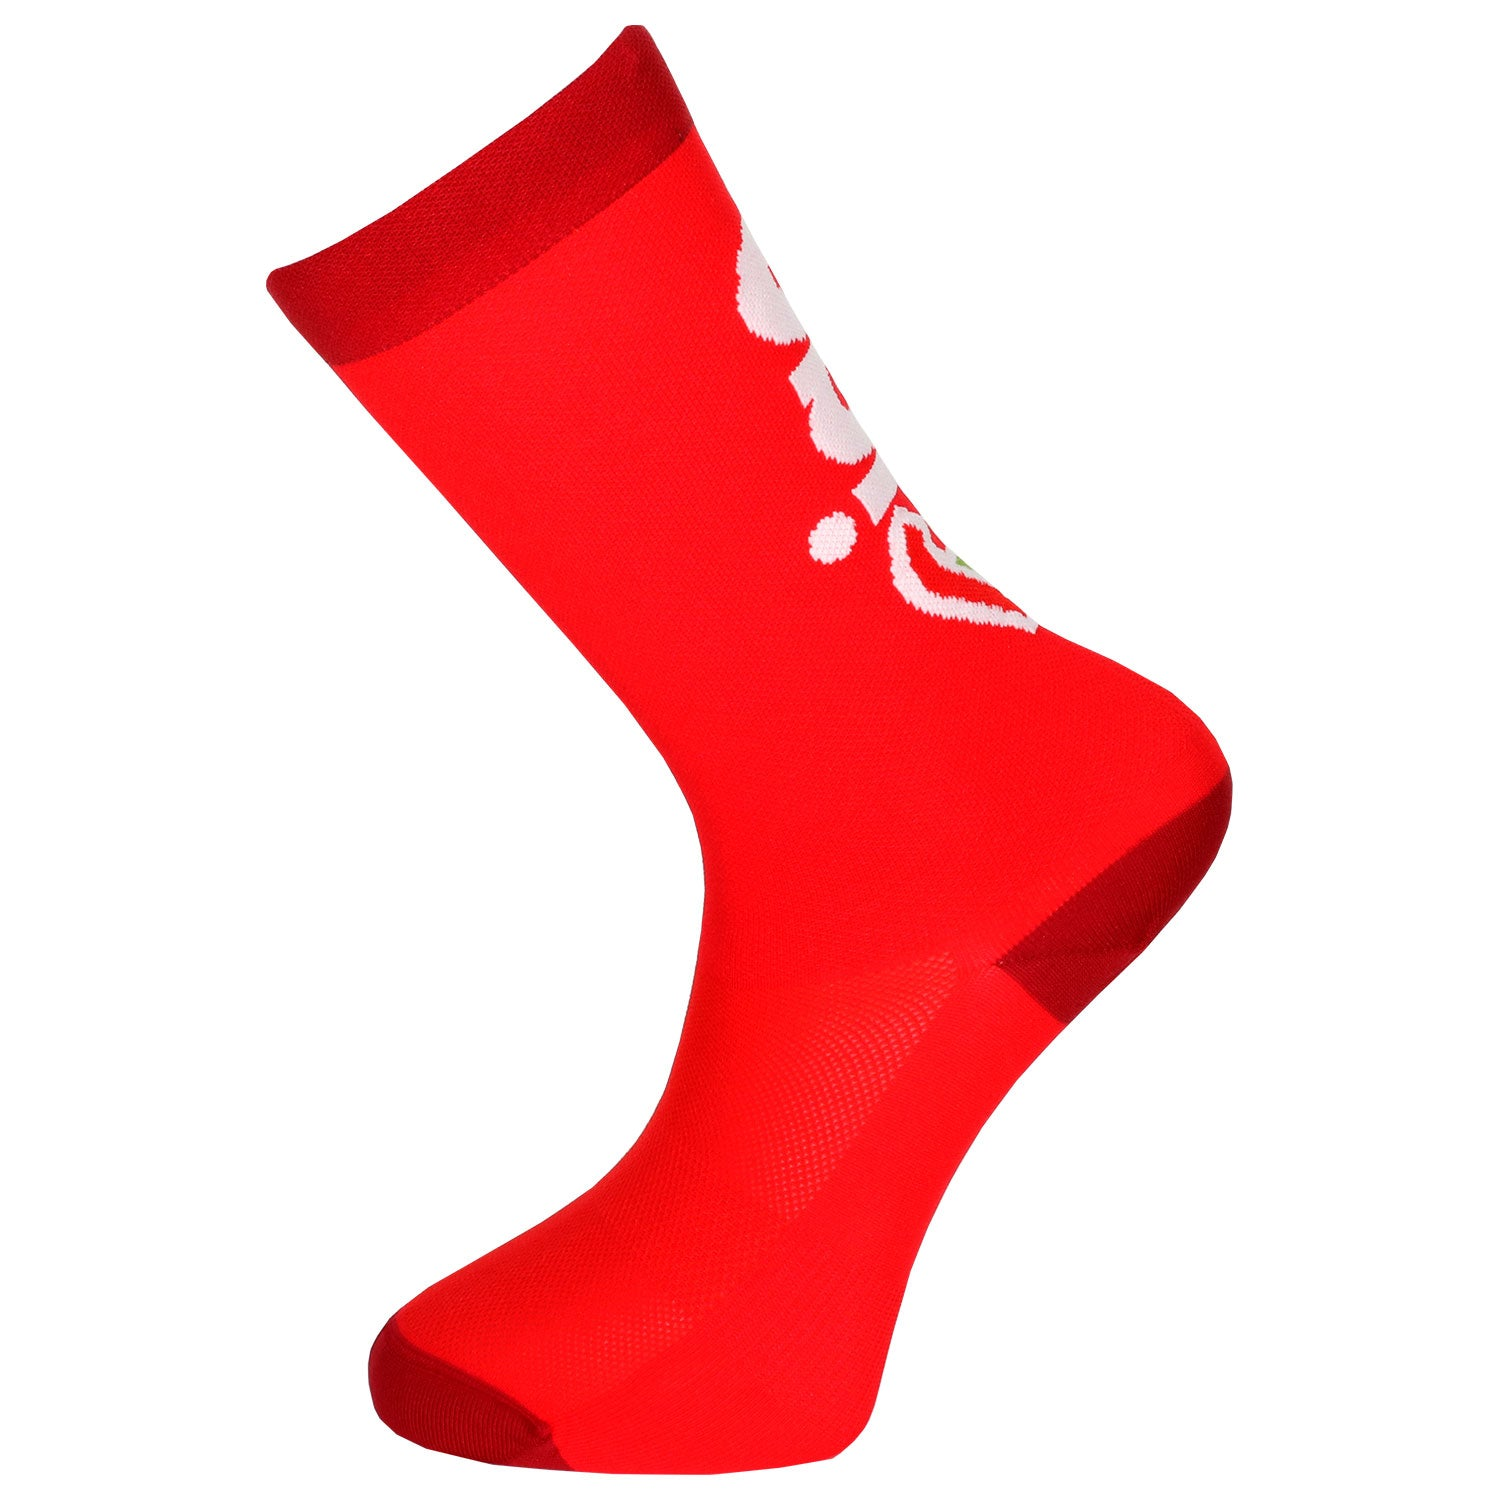 Cinelli Ciao Red Cycling Socks